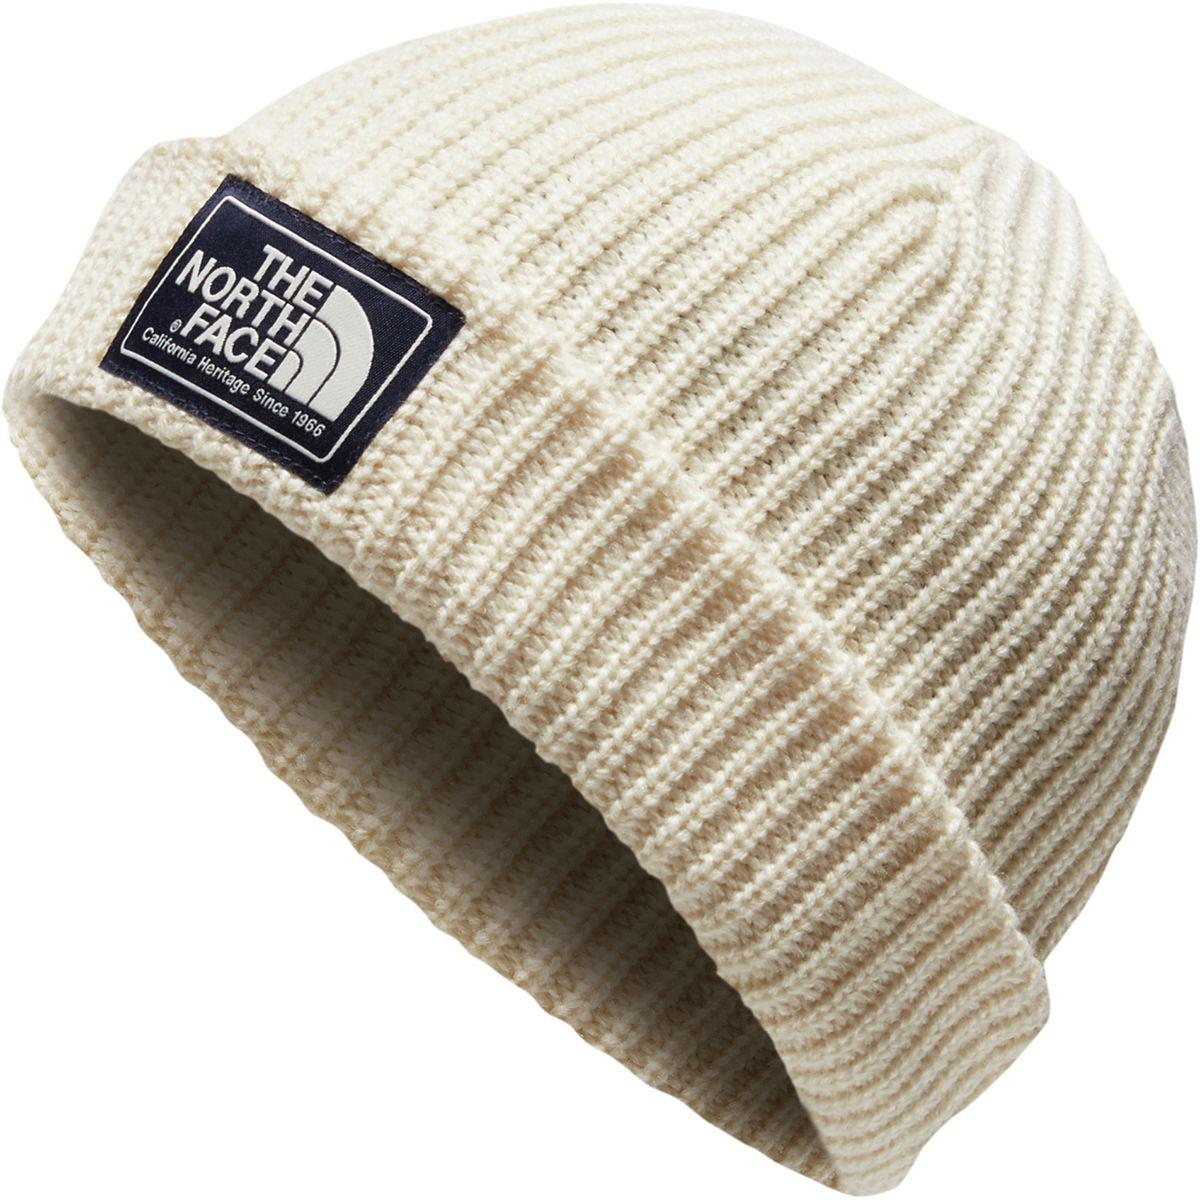 6a7c0e5d0fe Lyst - The North Face Salty Dog Beanie in Natural for Men